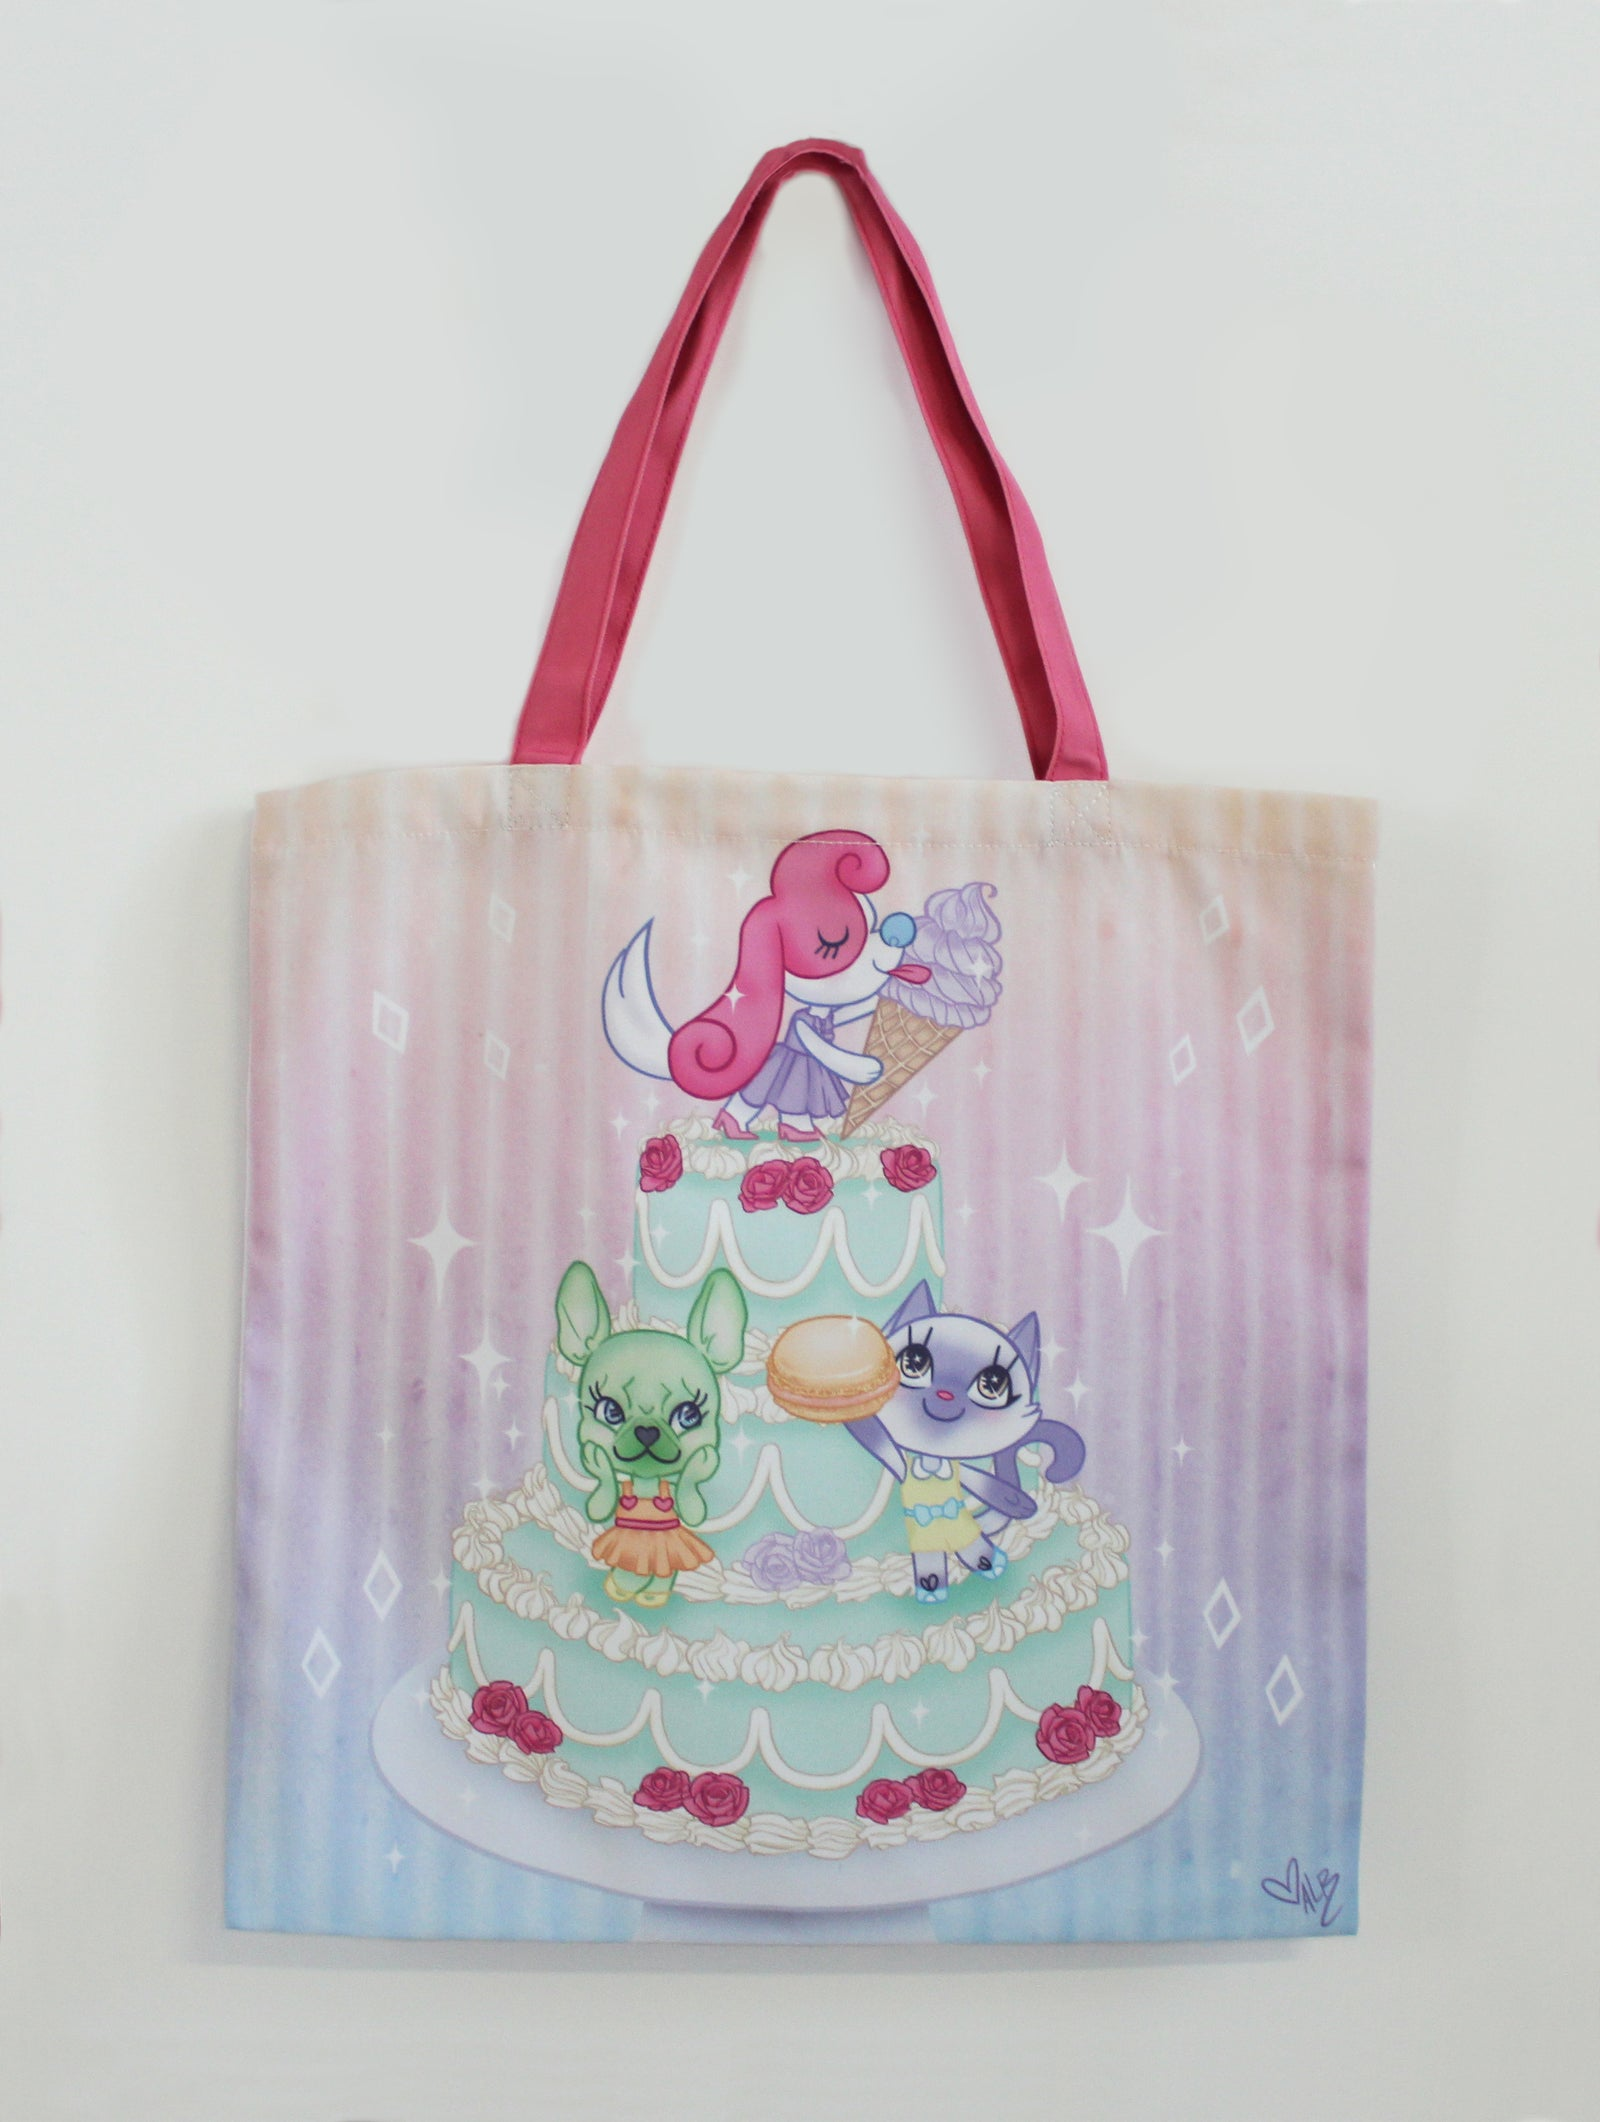 Crumpet and Friends Tote